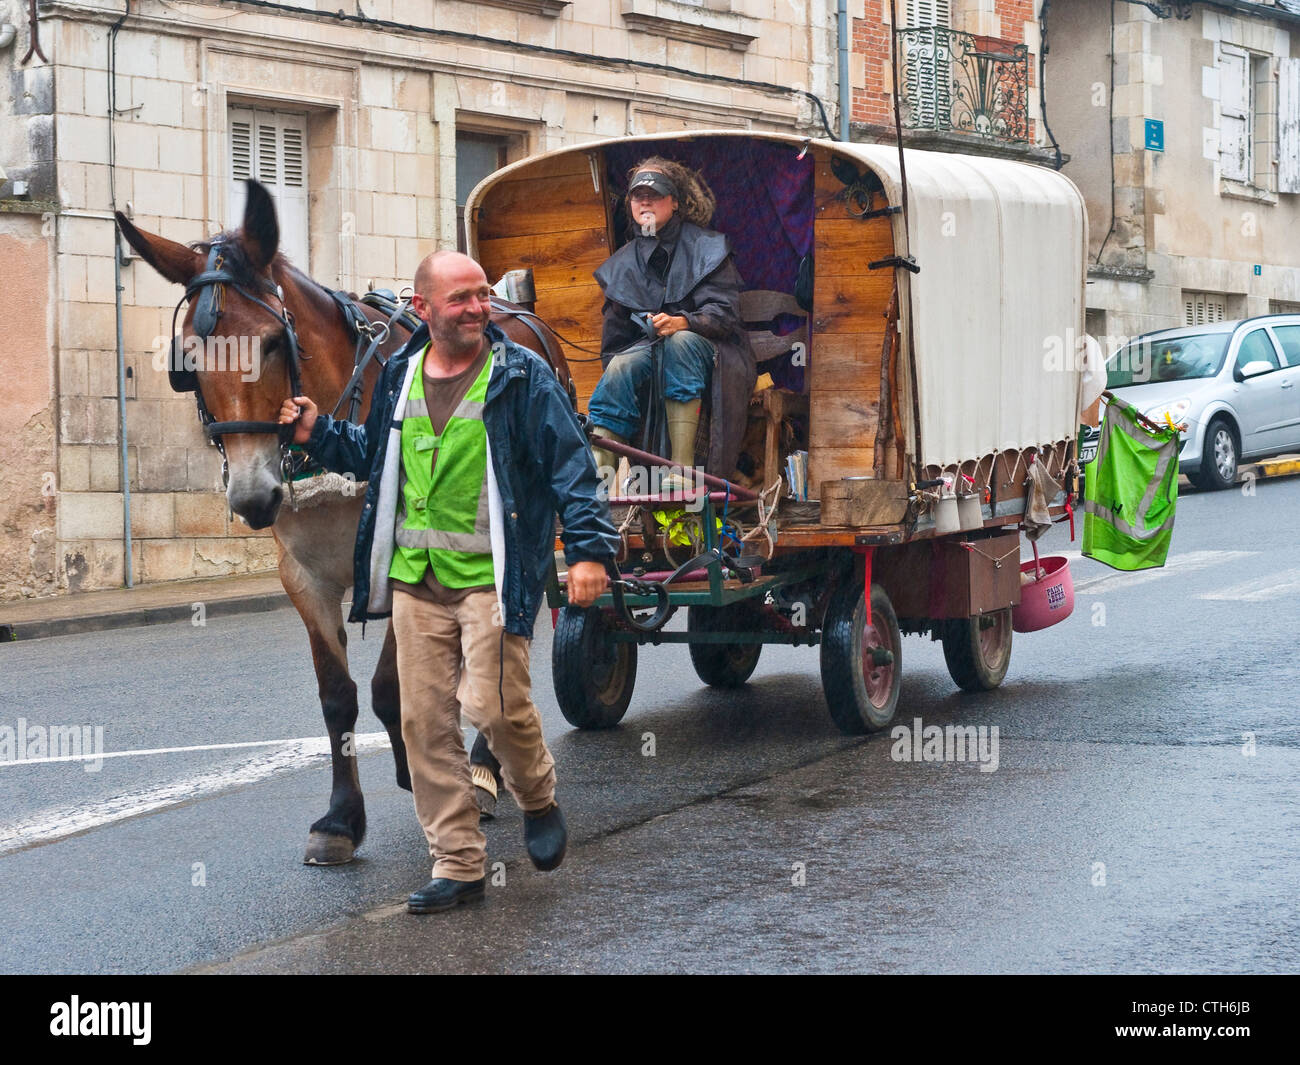 Horse-drawn wooden caravan and travelers - France. - Stock Image